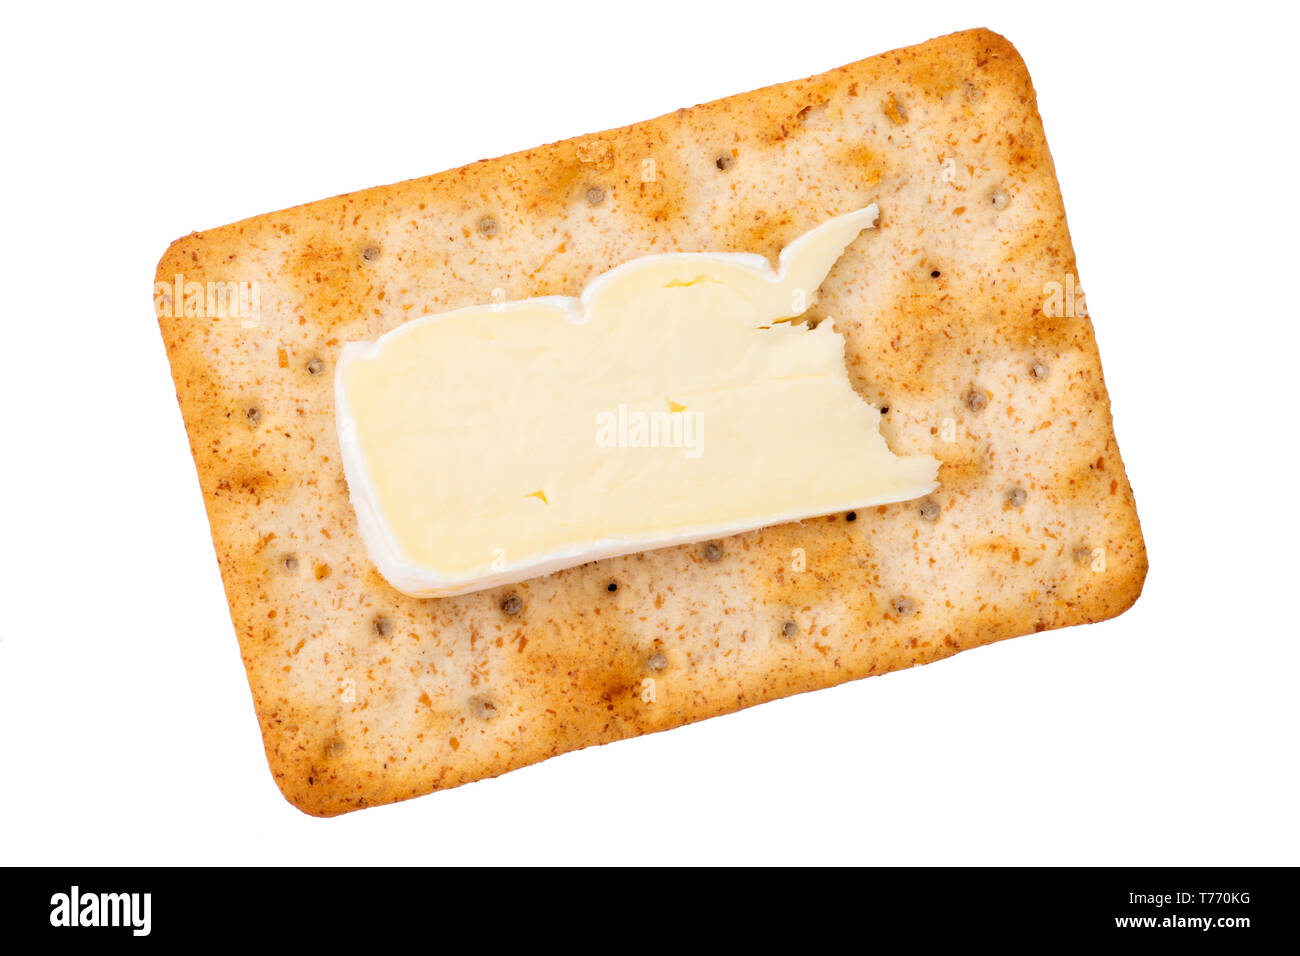 Cheese cracker with a slice of brie viewed from overhead. Sourdough crackers for a quick snack, UK. Cut out or isolated on a white background - Stock Image